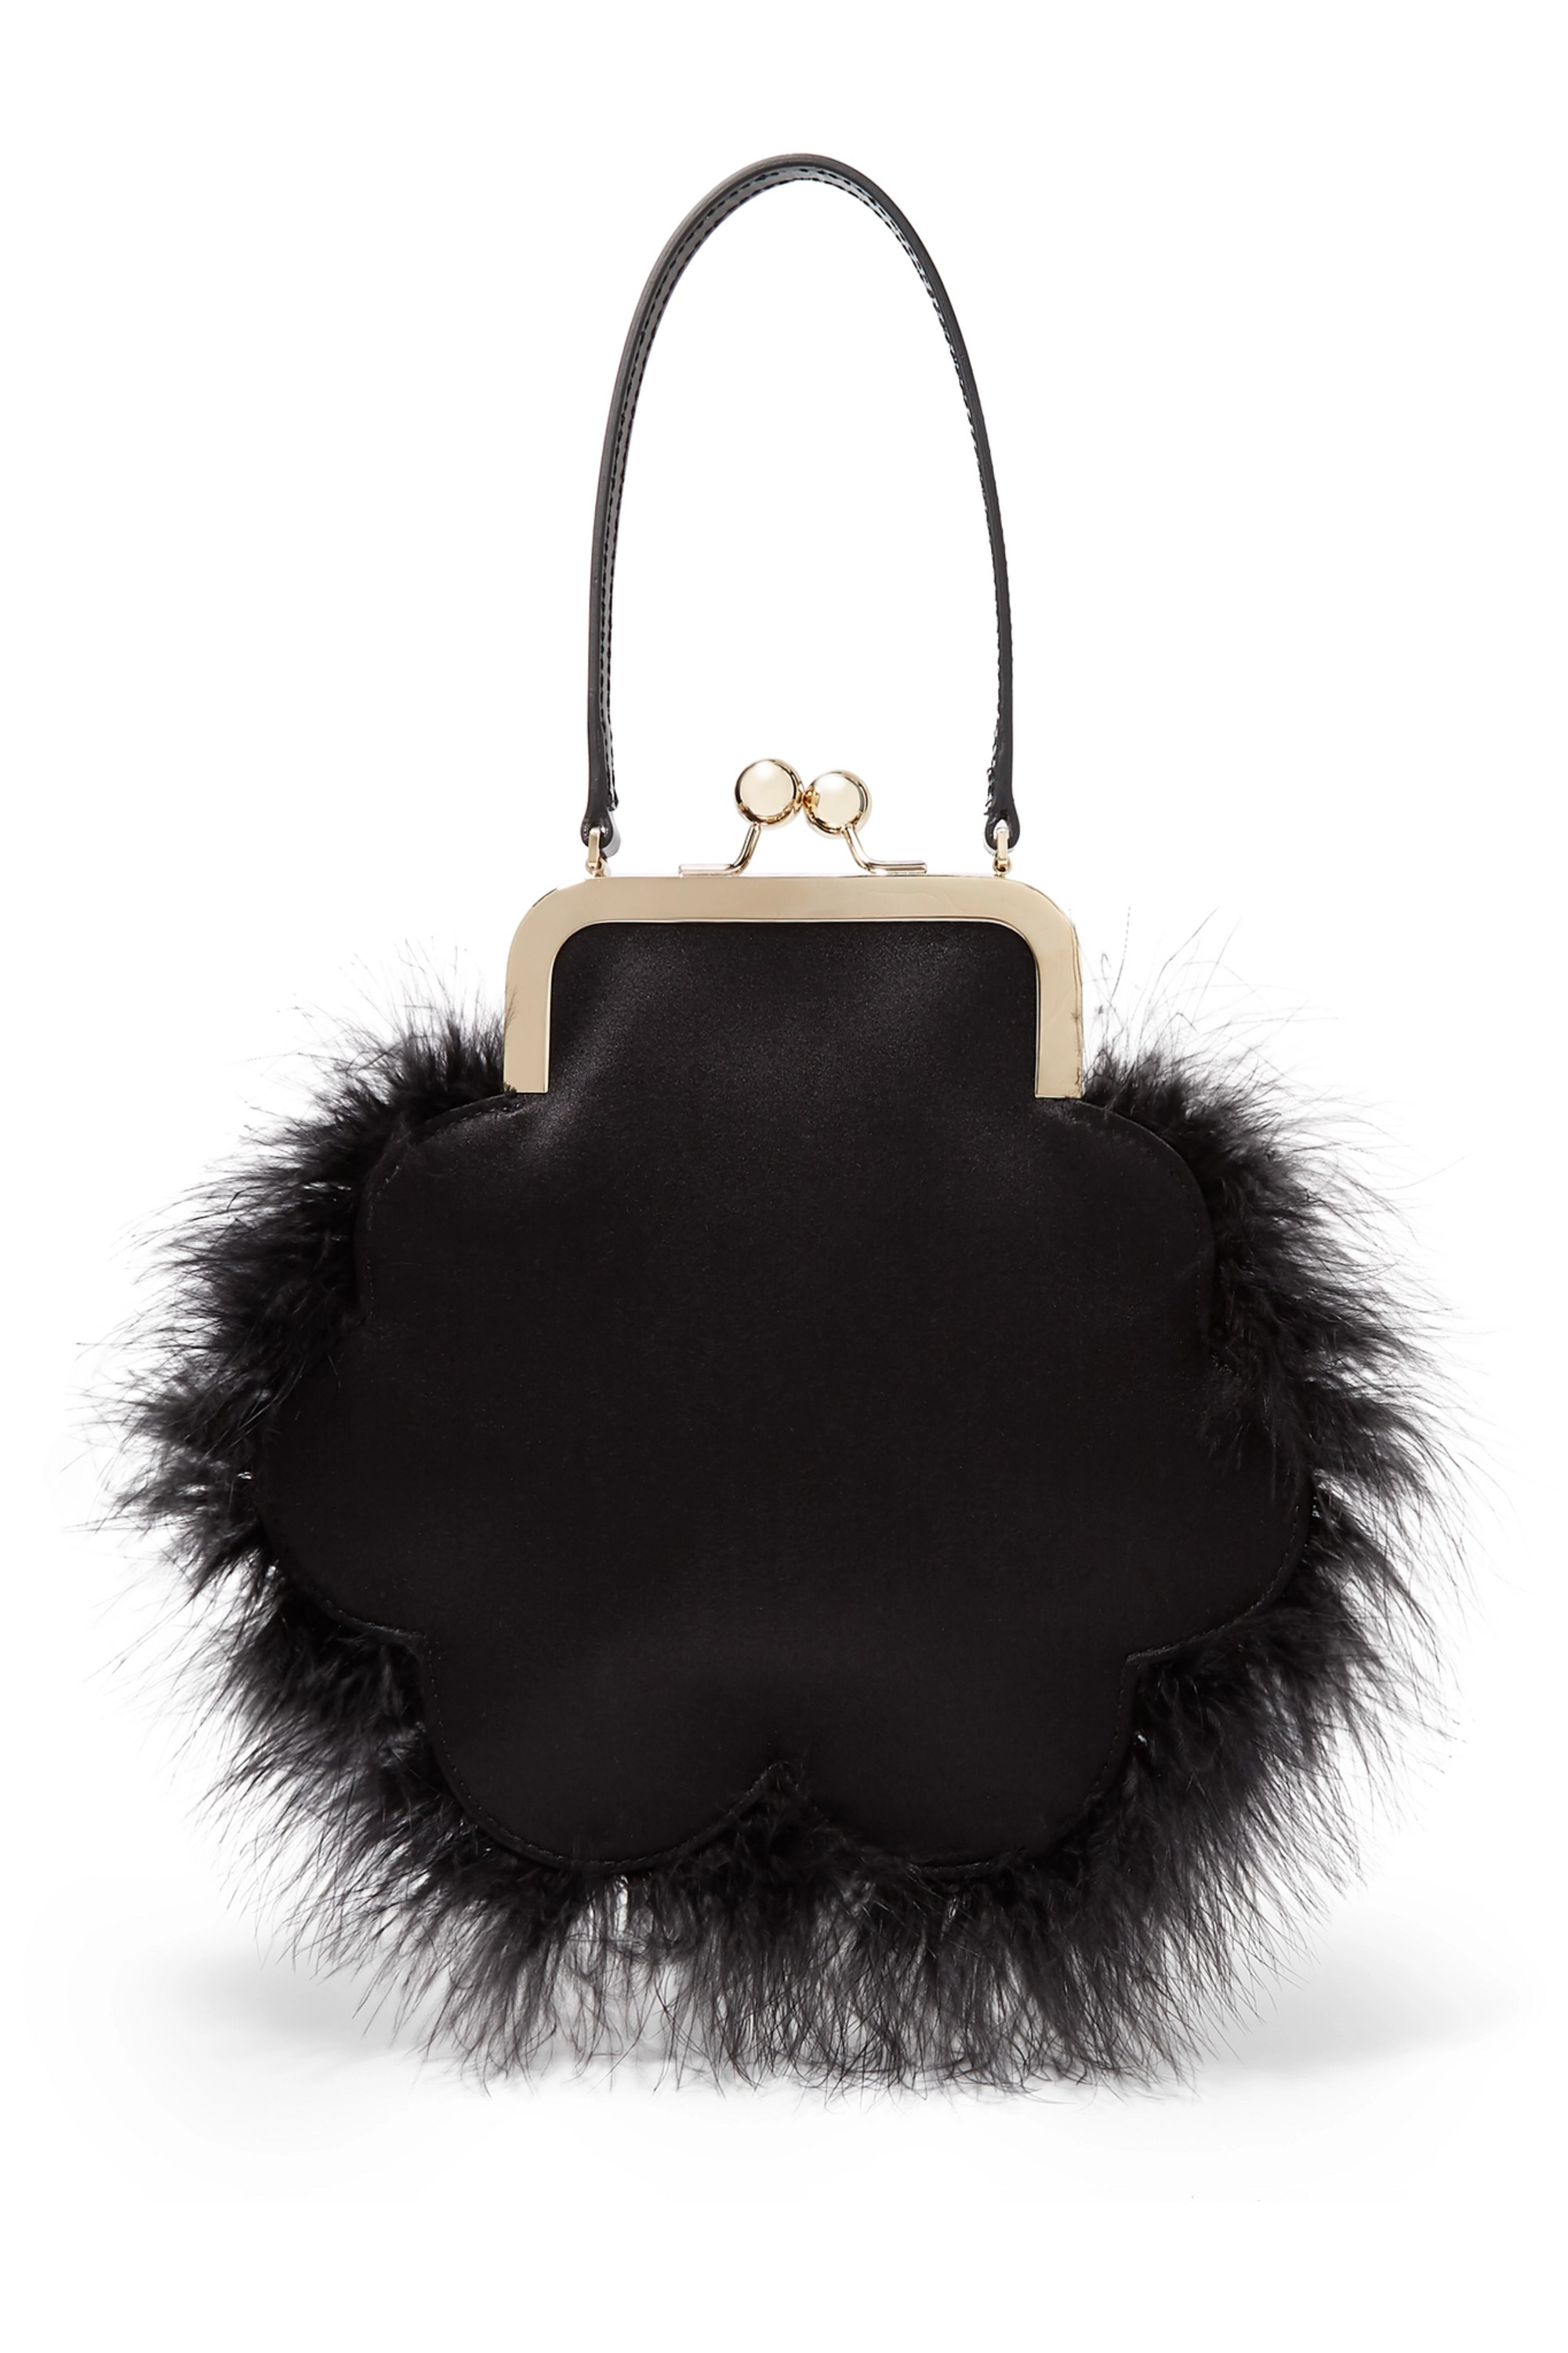 Simone Rocha Flower feather-trimmed satin tote